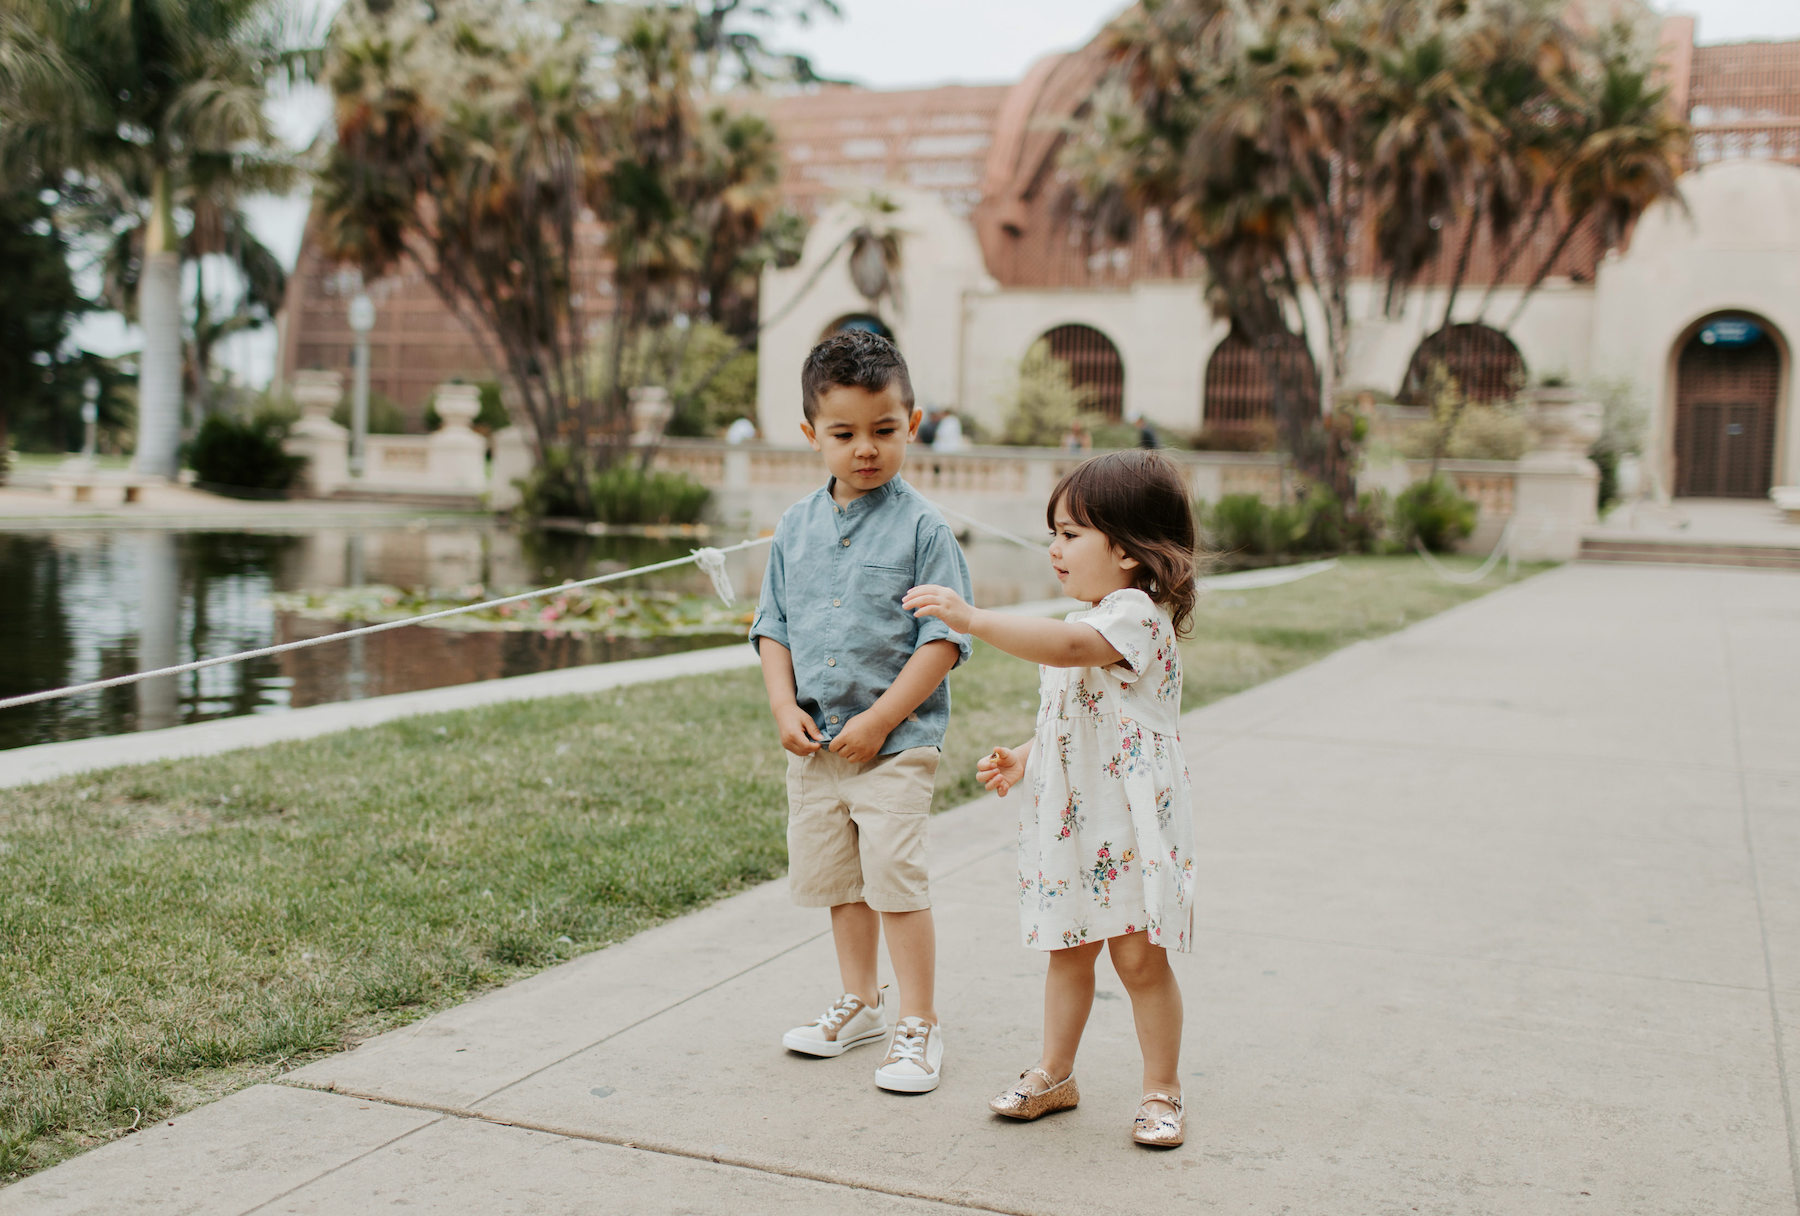 two young children standing in Balboa Park in San Diego, California